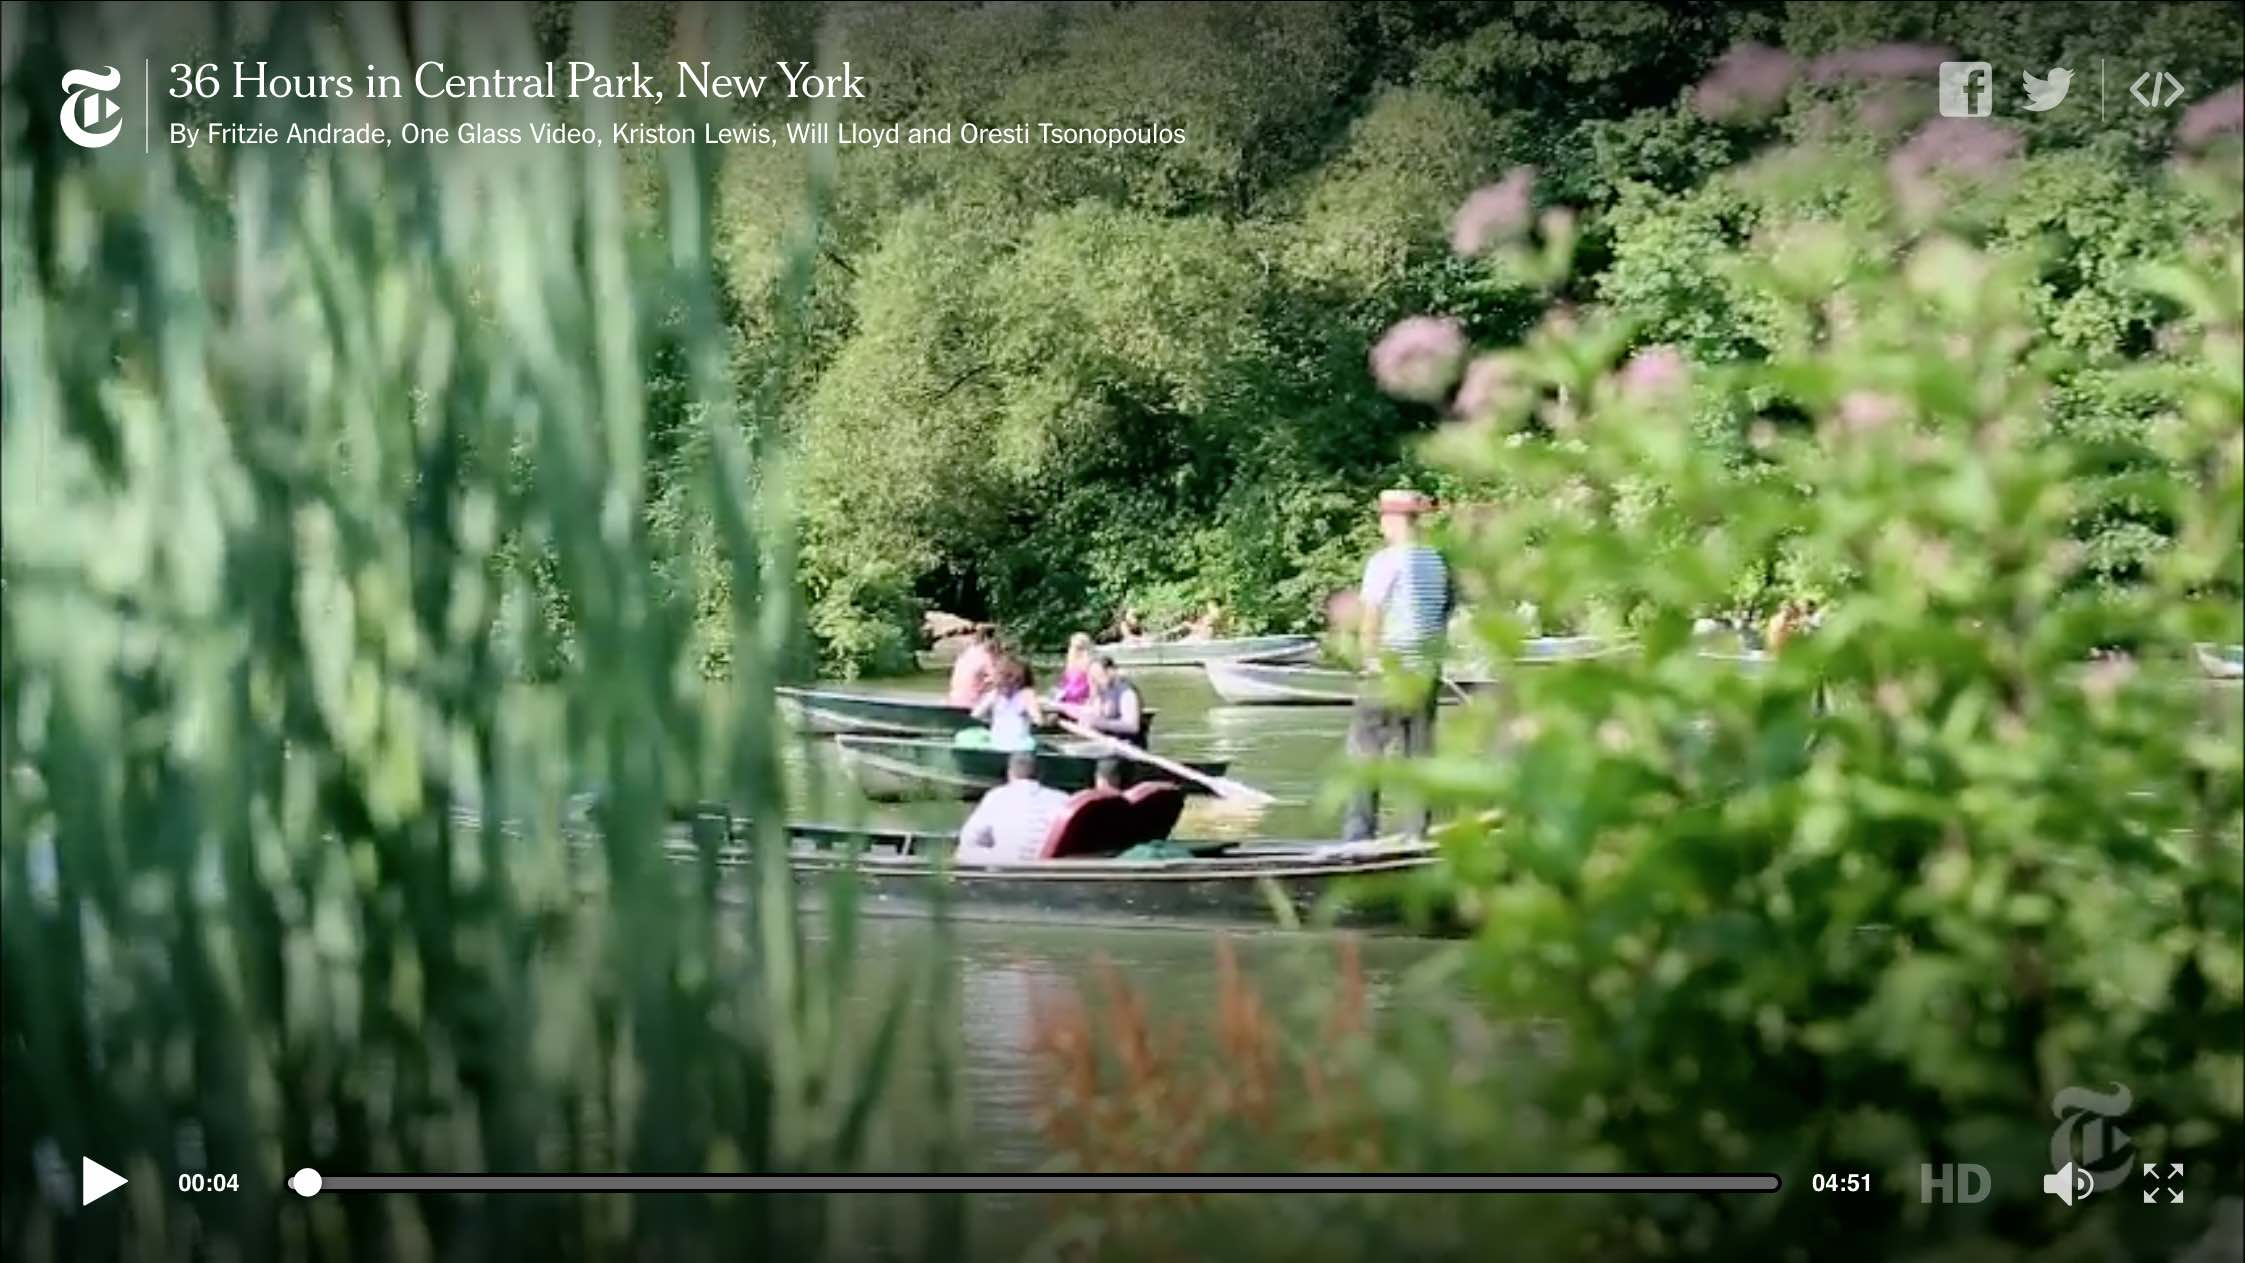 With its endless trails, hidden nooks, museums and nearby night spots, Central Park is that rare tourist destination that is also a pleasure ground for locals. By Fritzie Andrade, One Glass Video, Kriston Lewis, Will Lloyd and Oresti Tsonopoulos on Publish Date: September 17, 2014. Photo by Piotr Redlinski for The New York Times. Watch  in Times  Video »